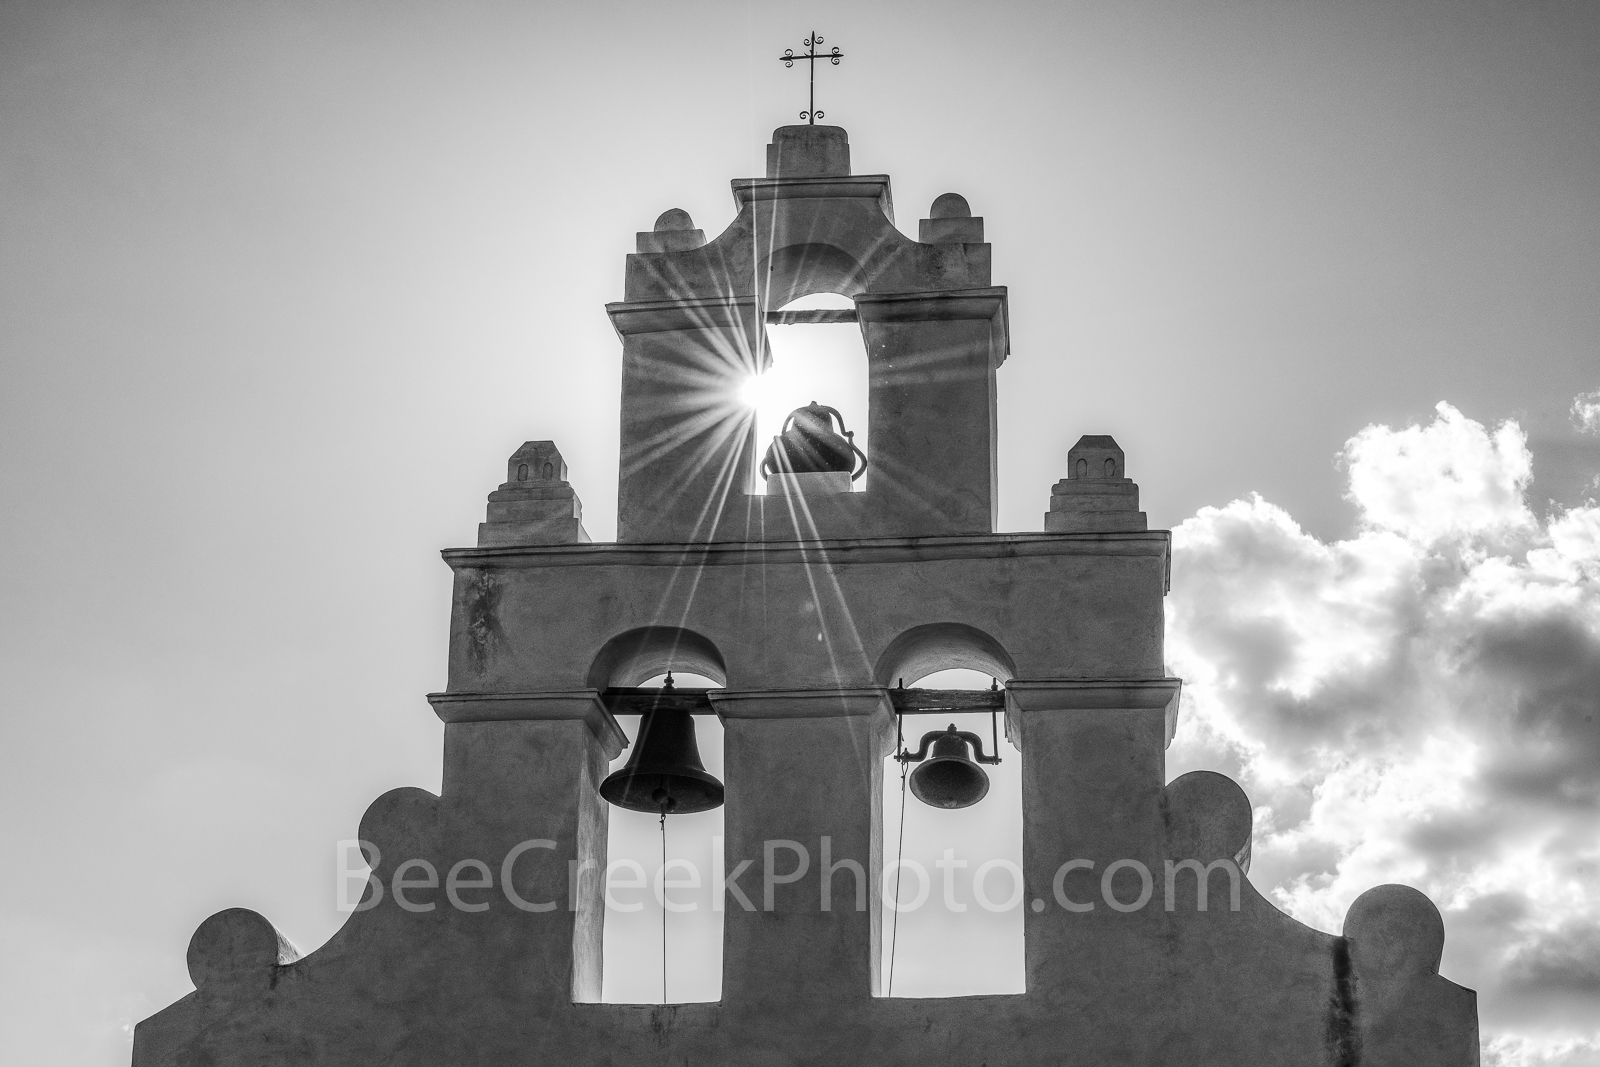 San Antonio, San Juan Mission, bells tower, sun rays, sparkle, Missions, bw, black and white, San Juan Mission Bell Tower, tourist, close up, Texas missions, landmarks, churches, chruch, catholic, pri